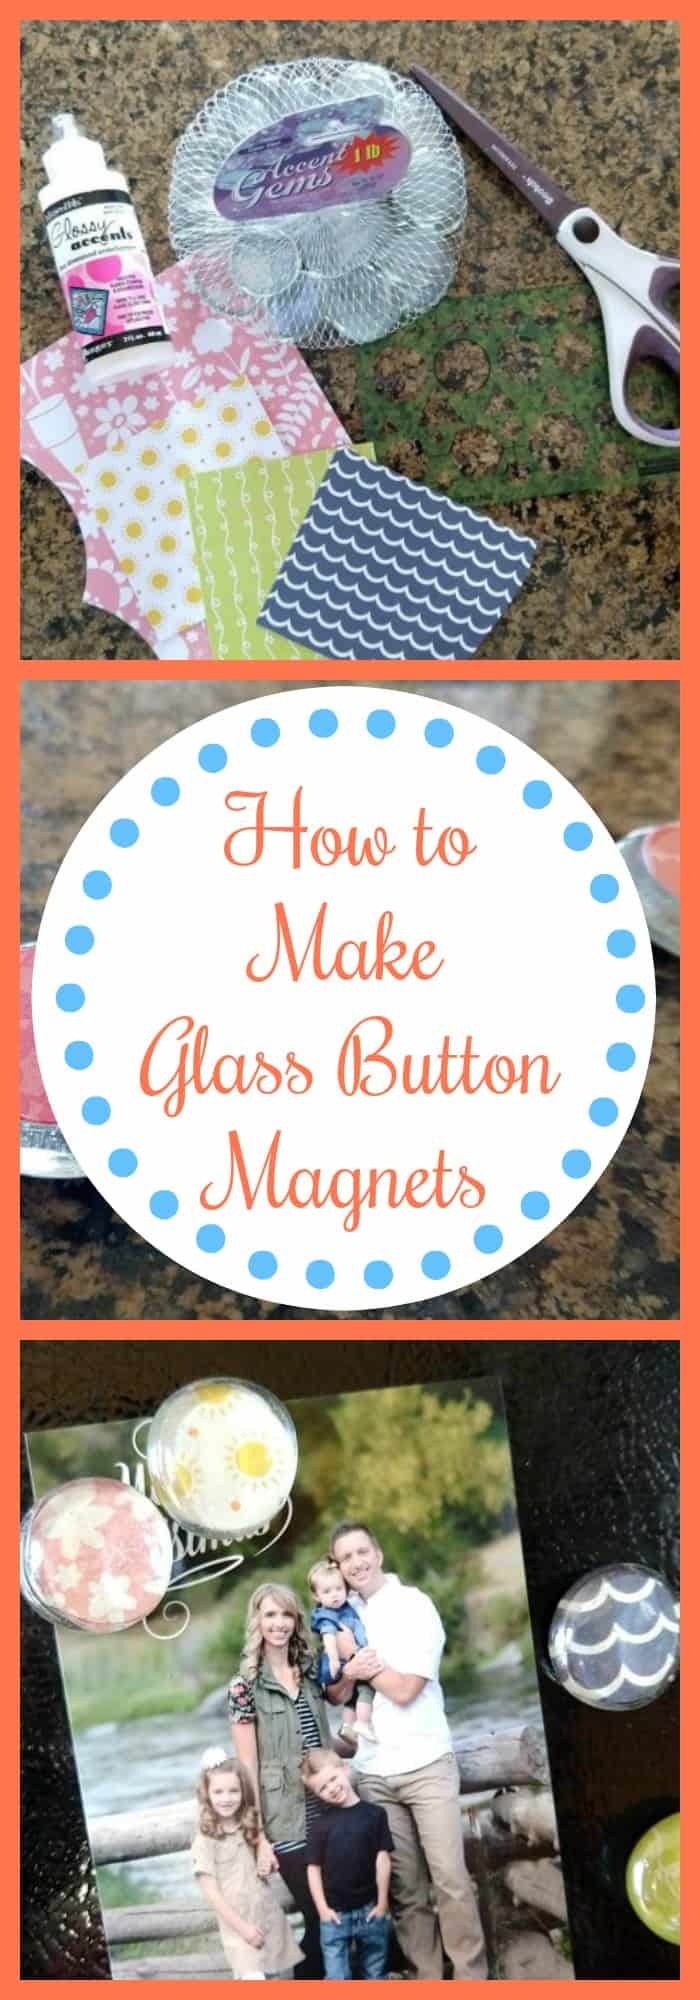 How to Make Glass Button Magnets